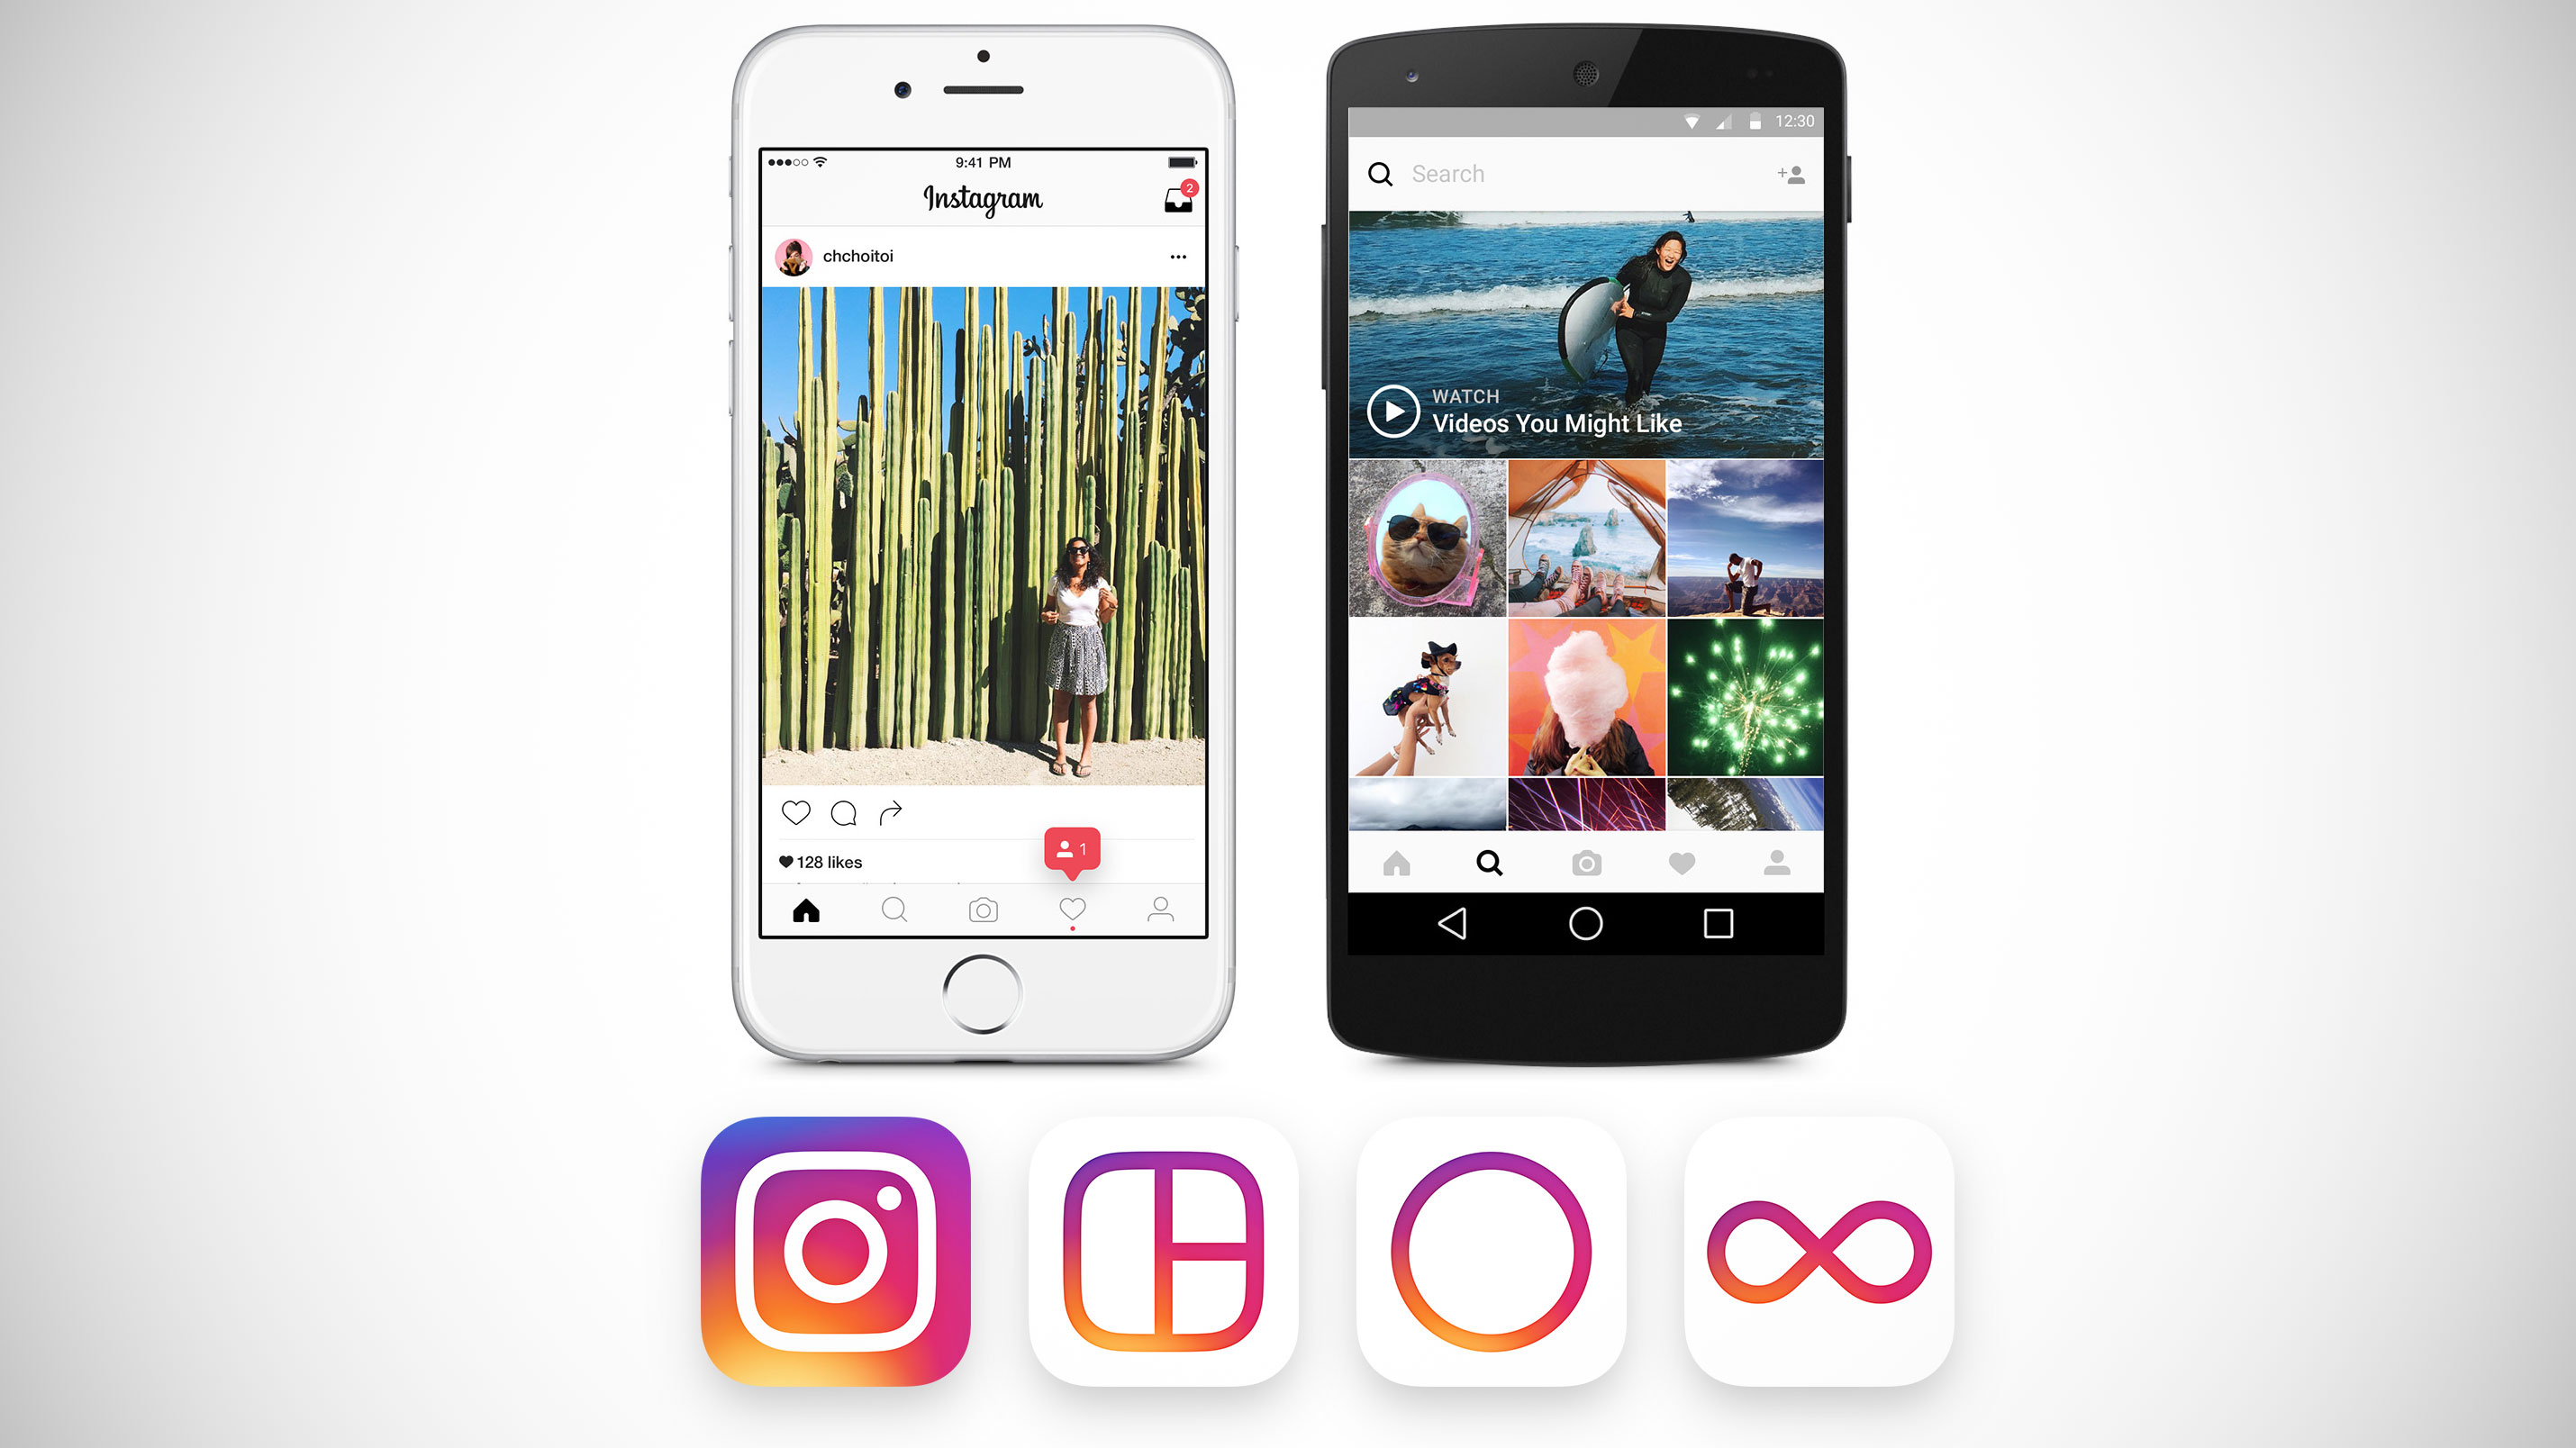 Instagram S Big Redesign Goes Live With A Colorful New